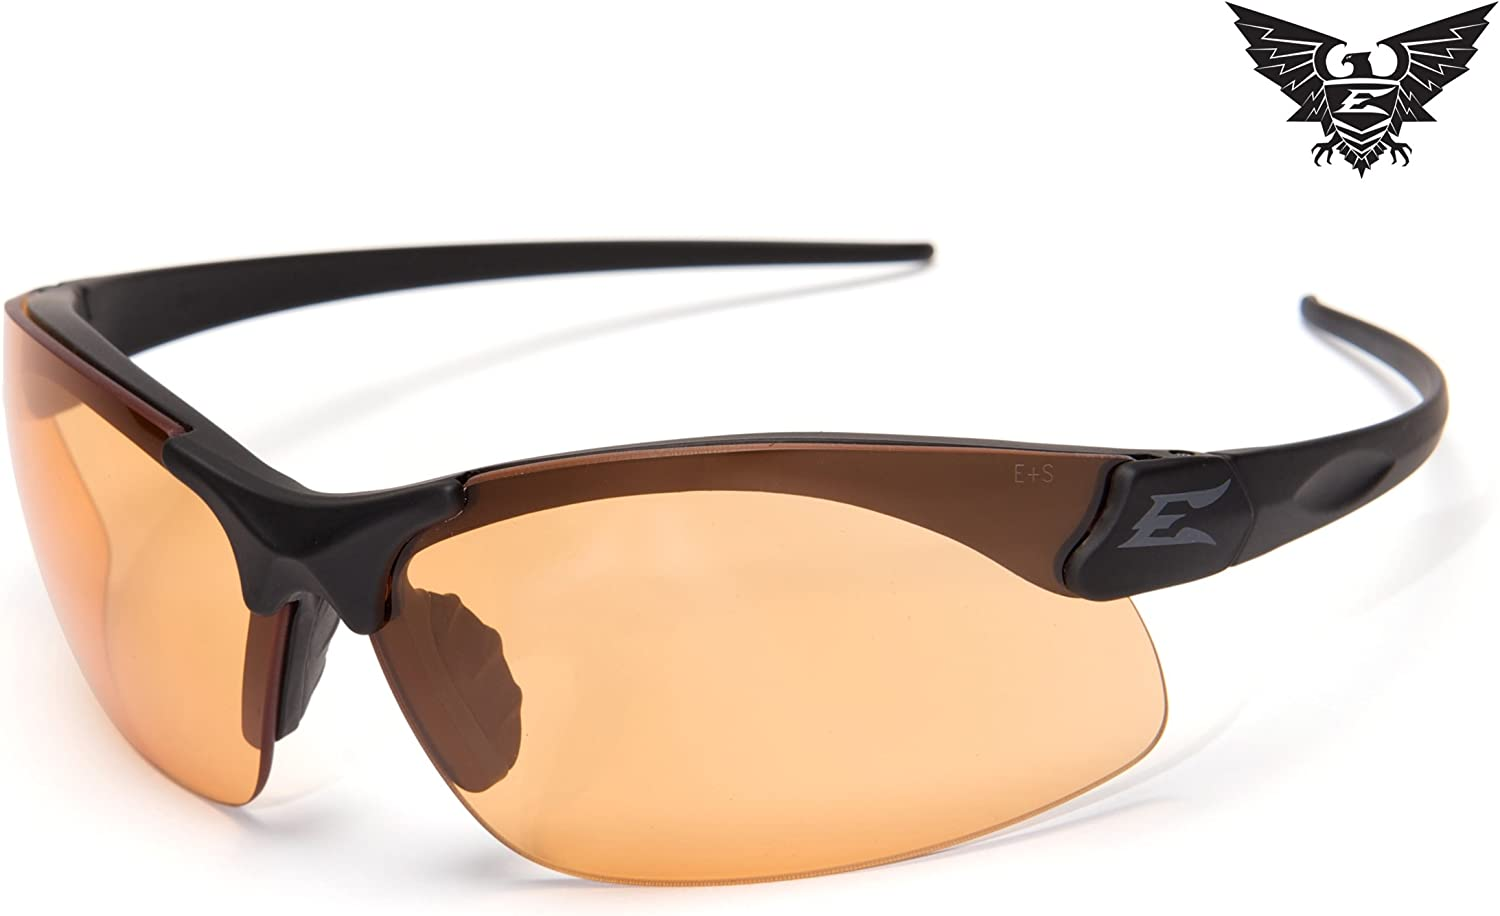 Edge Eyewear Sharp Edge Thin Temple Soft-Touch Matte Black Frame Tiger s Eye Vapor Shield Lenses